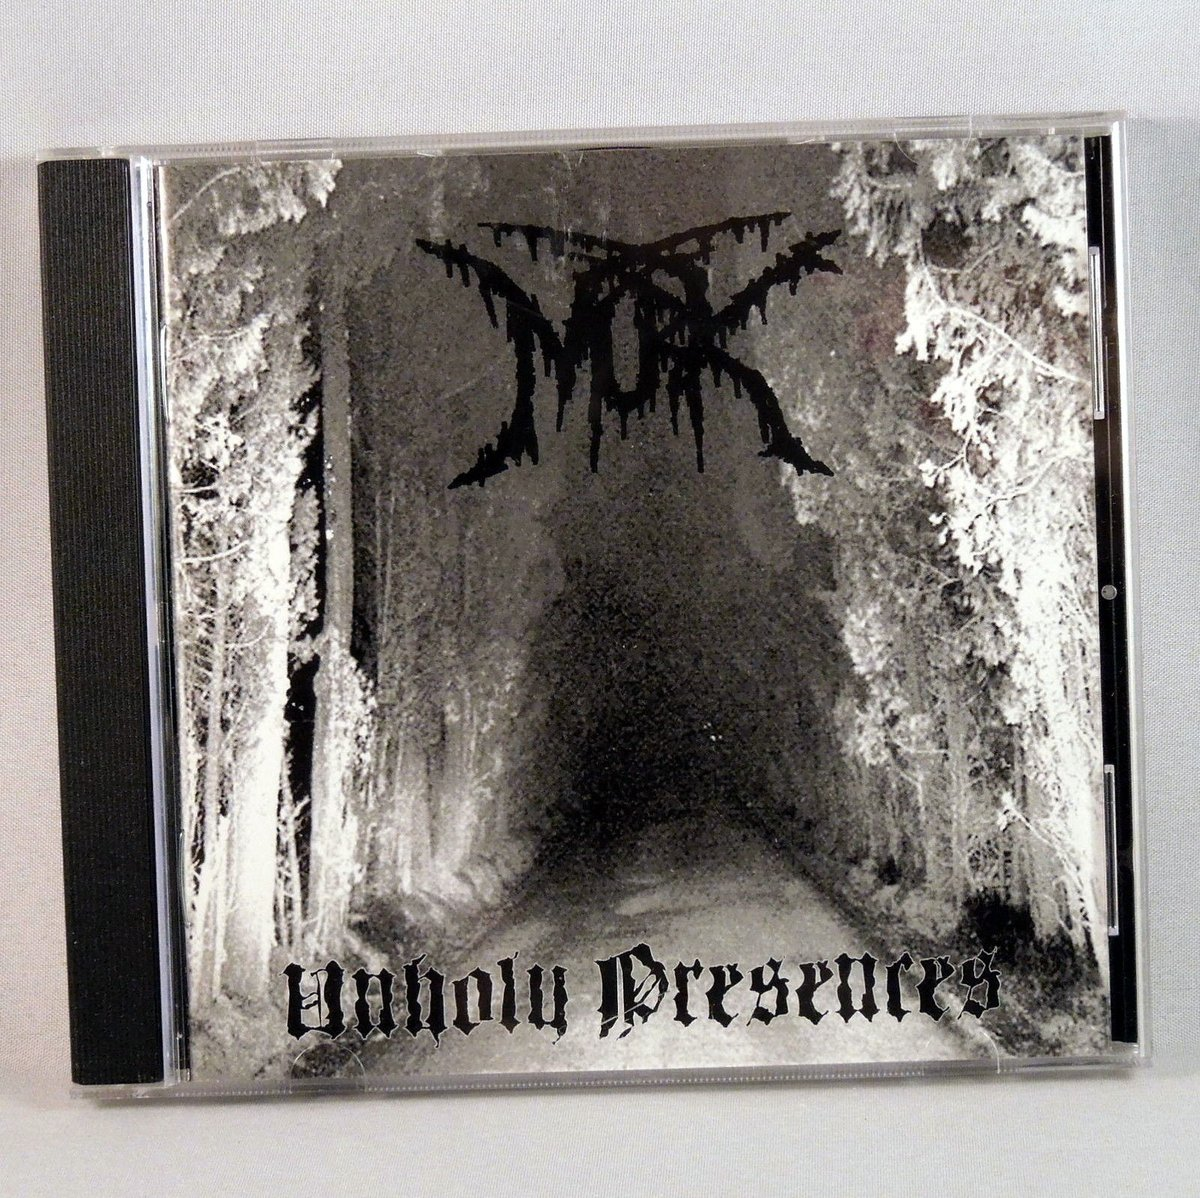 Check out MURK - Unholy Presences https://ebay.to/2wteS18  (CD No Colours Records) NEW #BlackMetal #ThrashMetal #UnholyPresences #BrandNew #cd #Murk #Italy #Band #NoColoursRecords  #New  http://www.versalcentre.com  | #VersalCentre #save #discount #sale #lowprice #niceprice #makeofferpic.twitter.com/9gleWW3Qgw